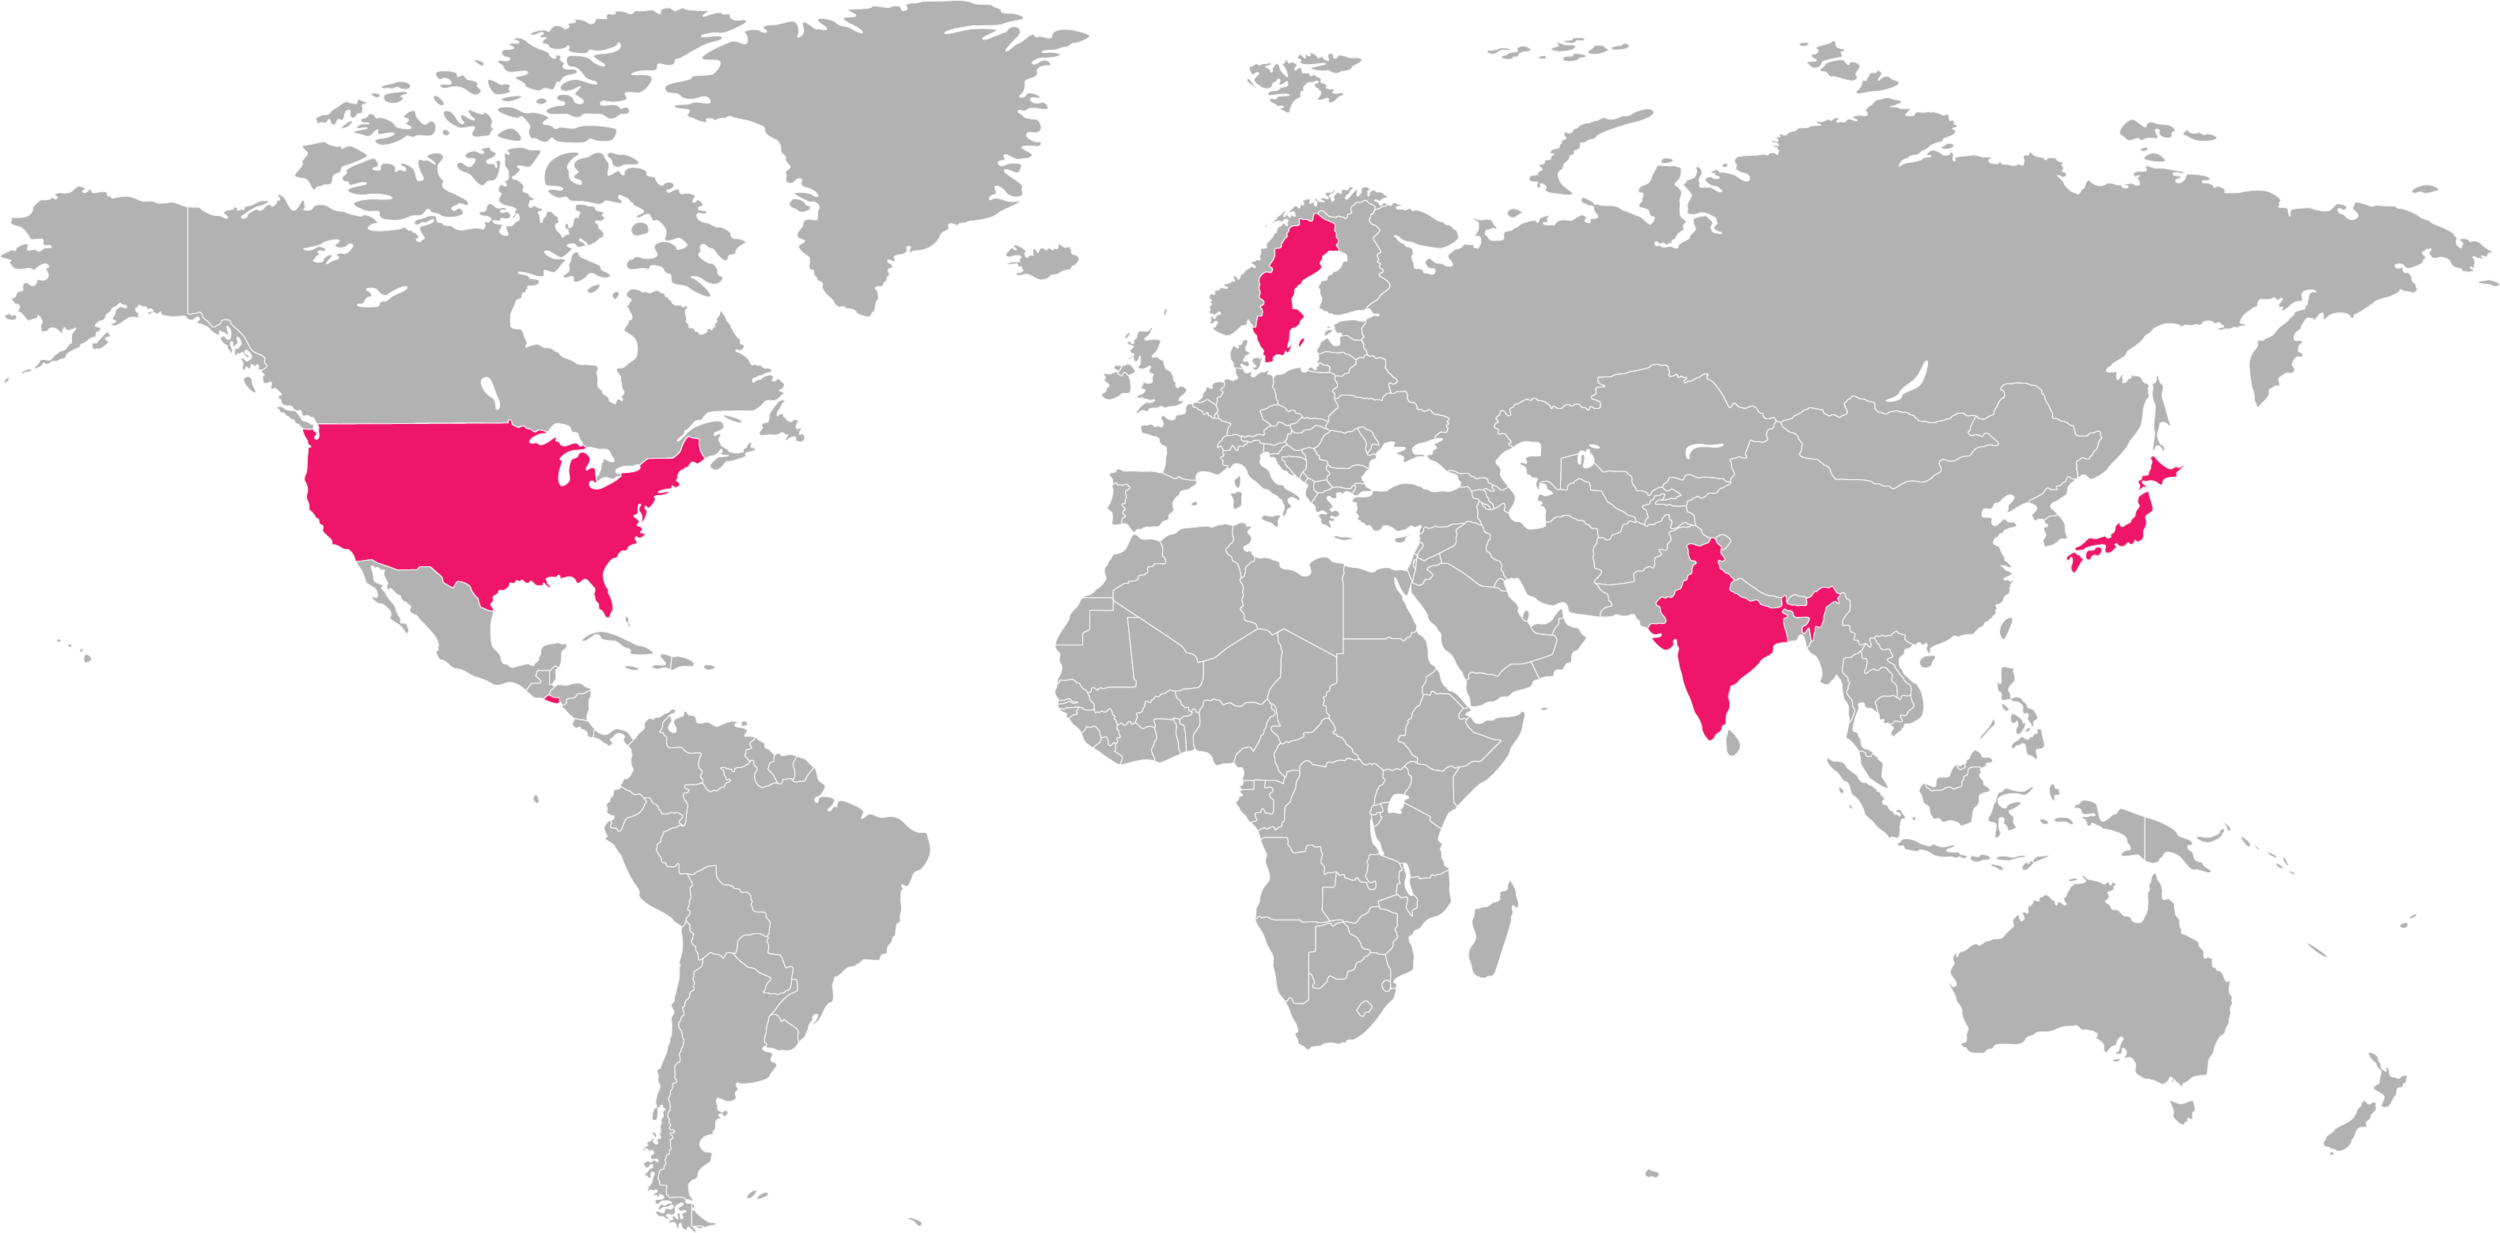 Paint it Pink! Check our global TAKE UP SPACE locations map!